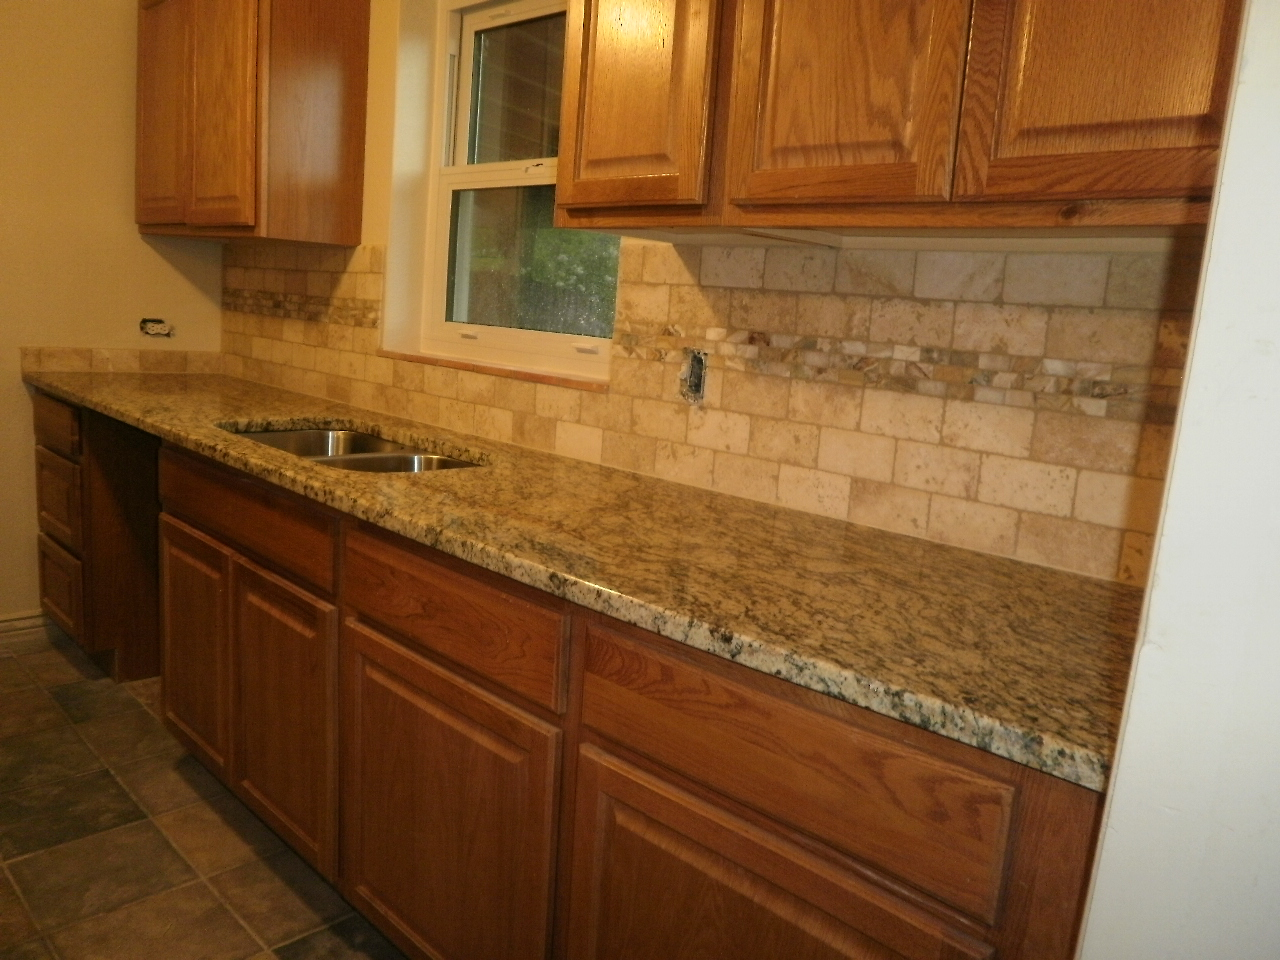 The Charming Kitchen tile backsplash design ideas Photograph